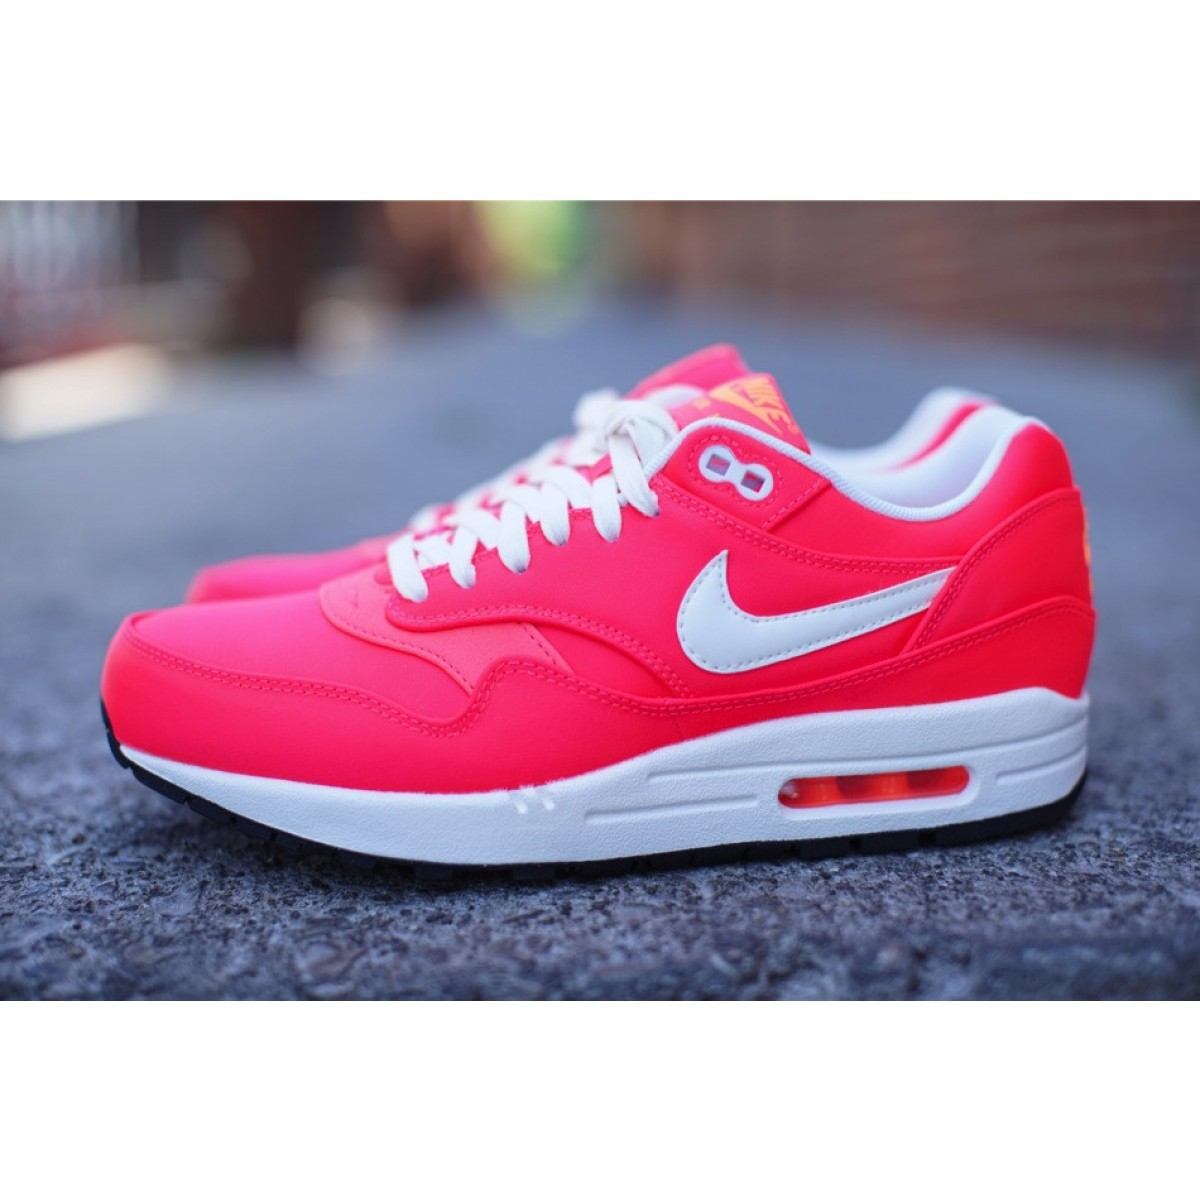 quality design aadd6 ecdf8 Nike Air max 2015 femme ROSE FLUO ... PNS8960001673 Acheter Nike Air Max 90  Femme Rose Jsatt Reduction Sold 566-608- Violet Bleu Rose Nike Femmes Air  Max ...